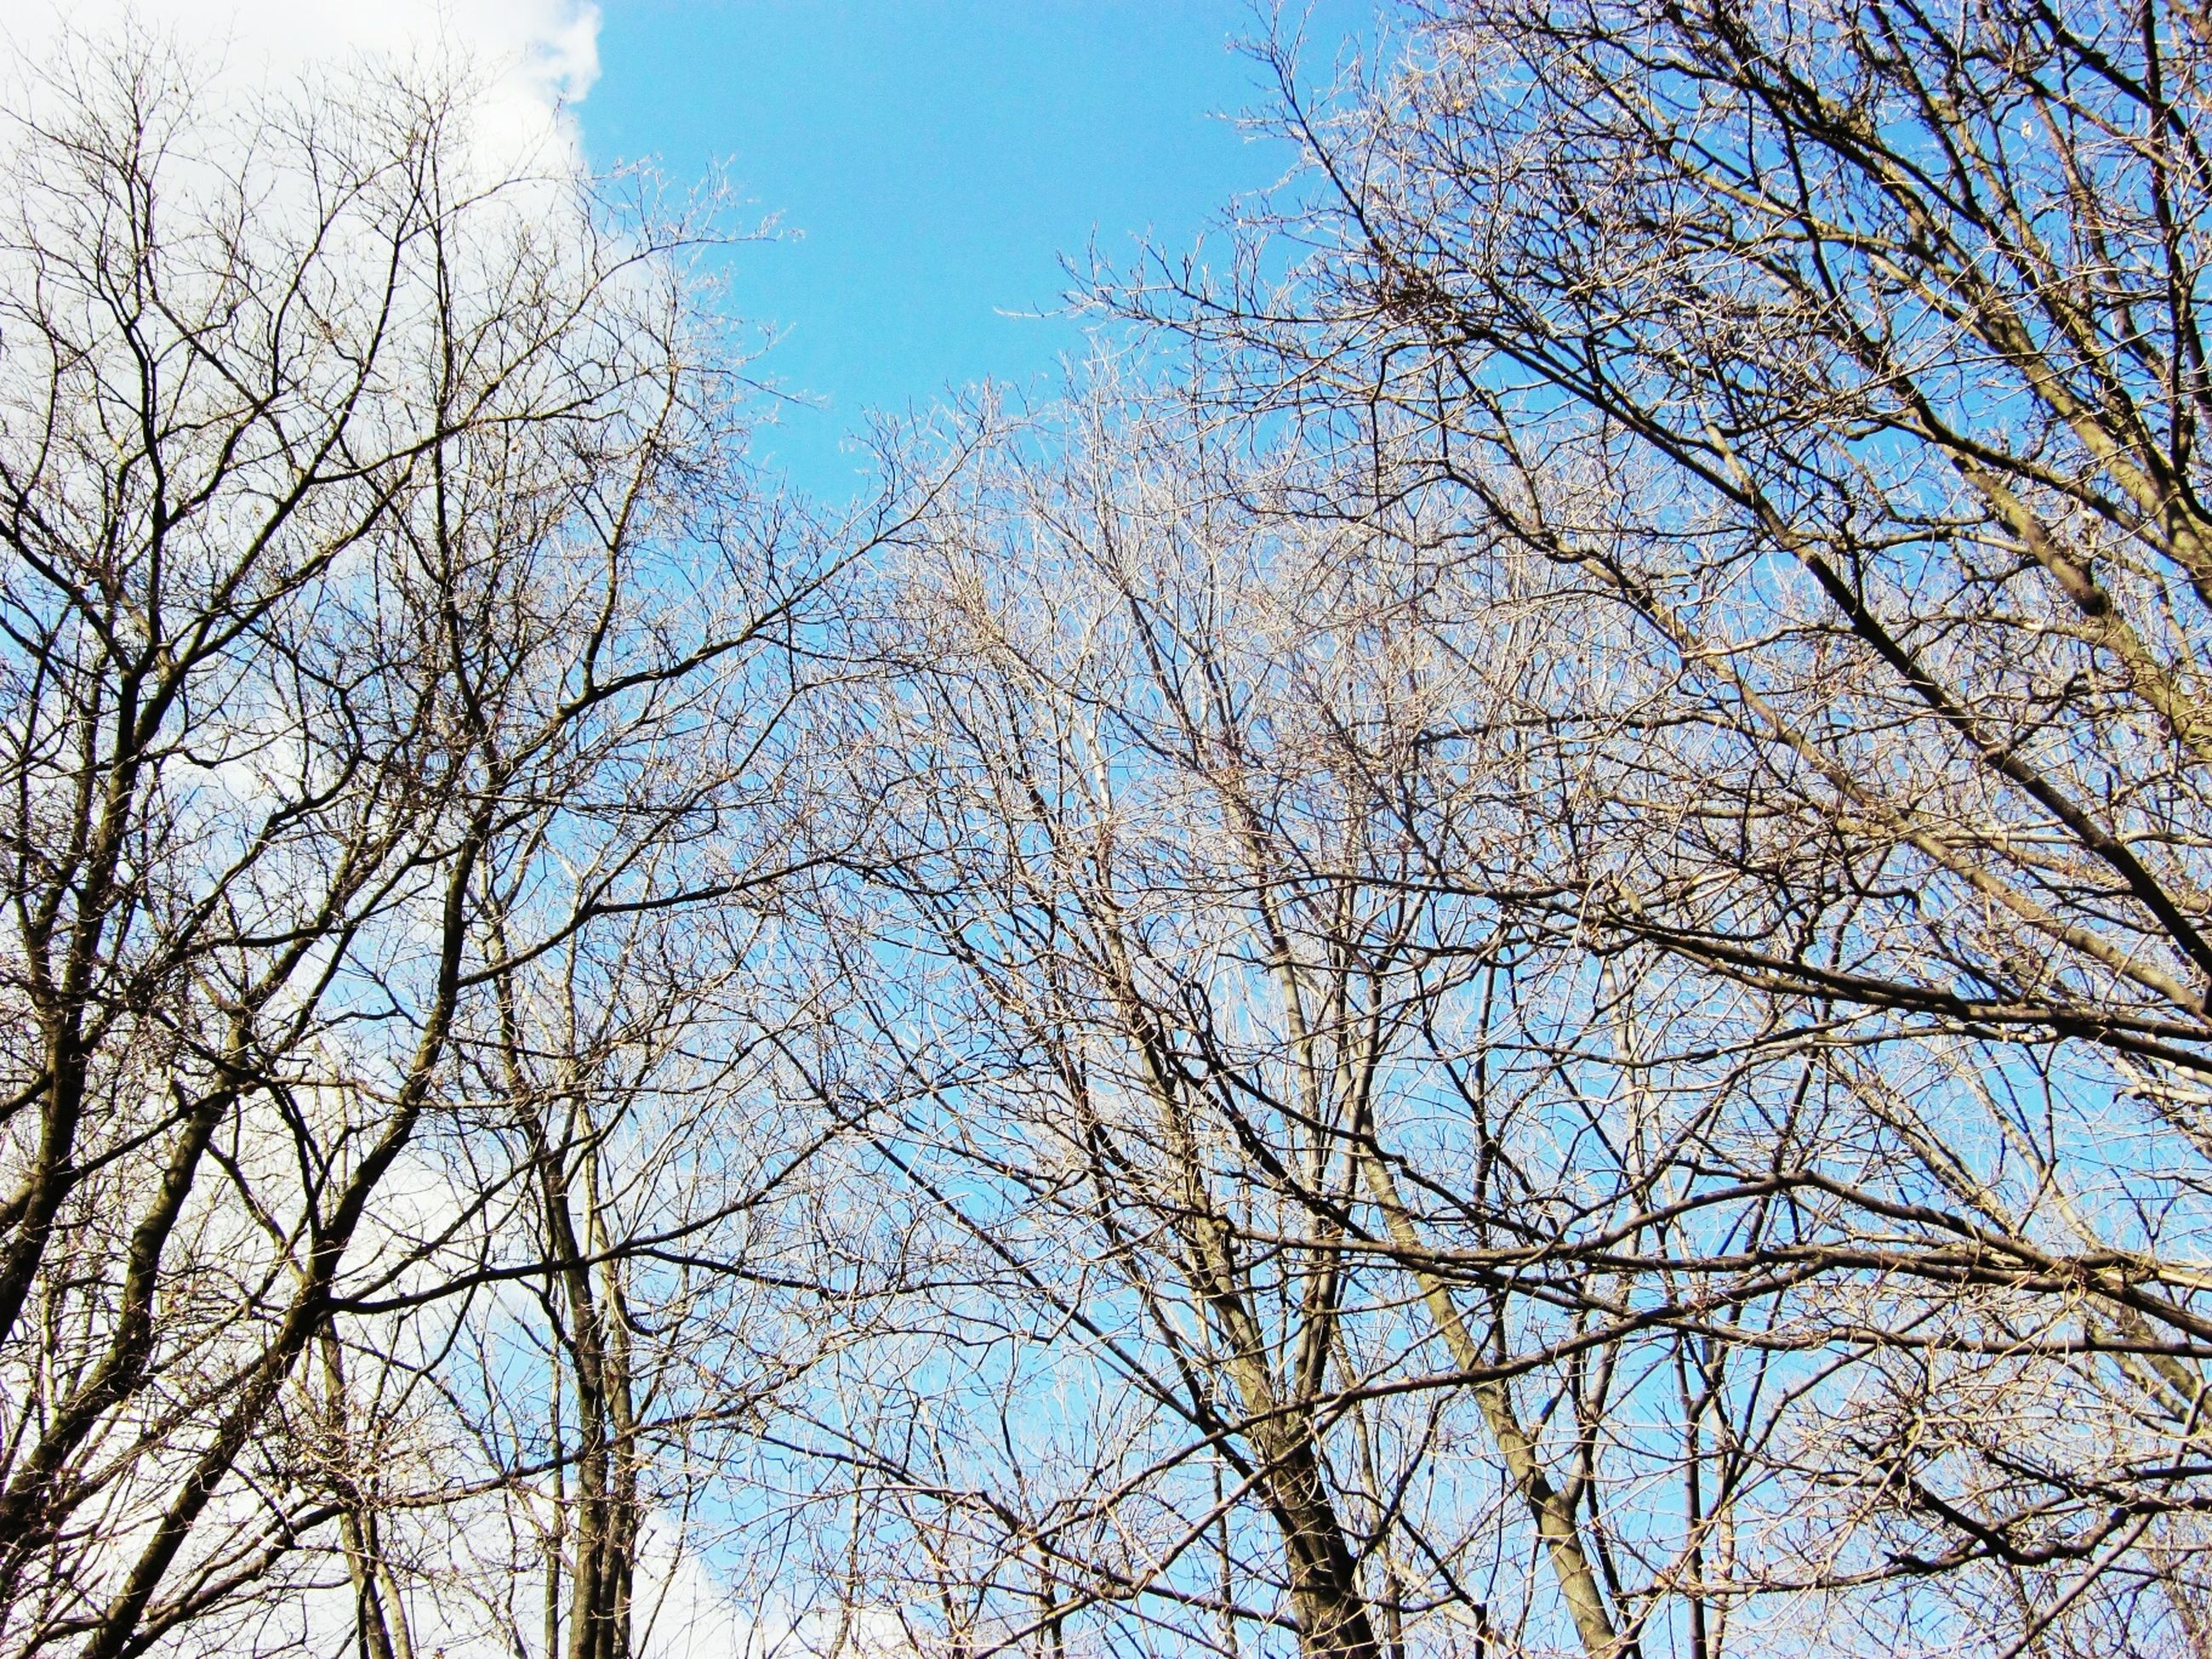 low angle view, tree, sky, nature, no people, bare tree, outdoors, day, clear sky, branch, bird, beauty in nature, animal themes